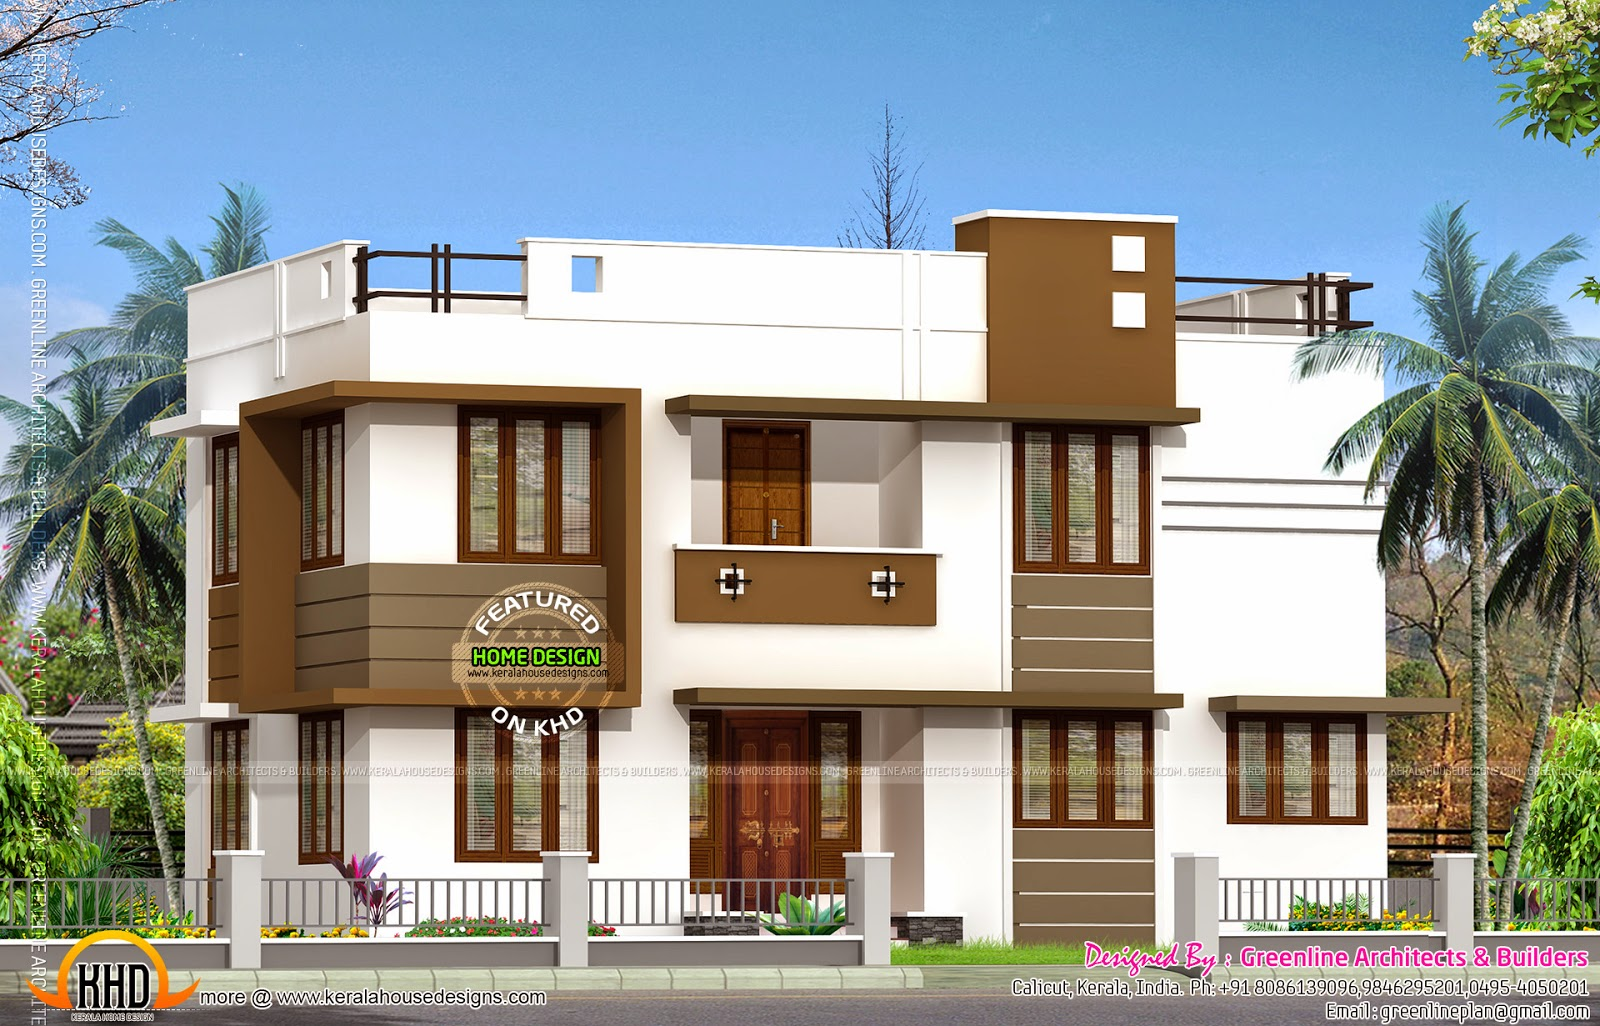 Kerala Style Low Cost Double Storied Home: Low Cost House Plans Sri Lanka